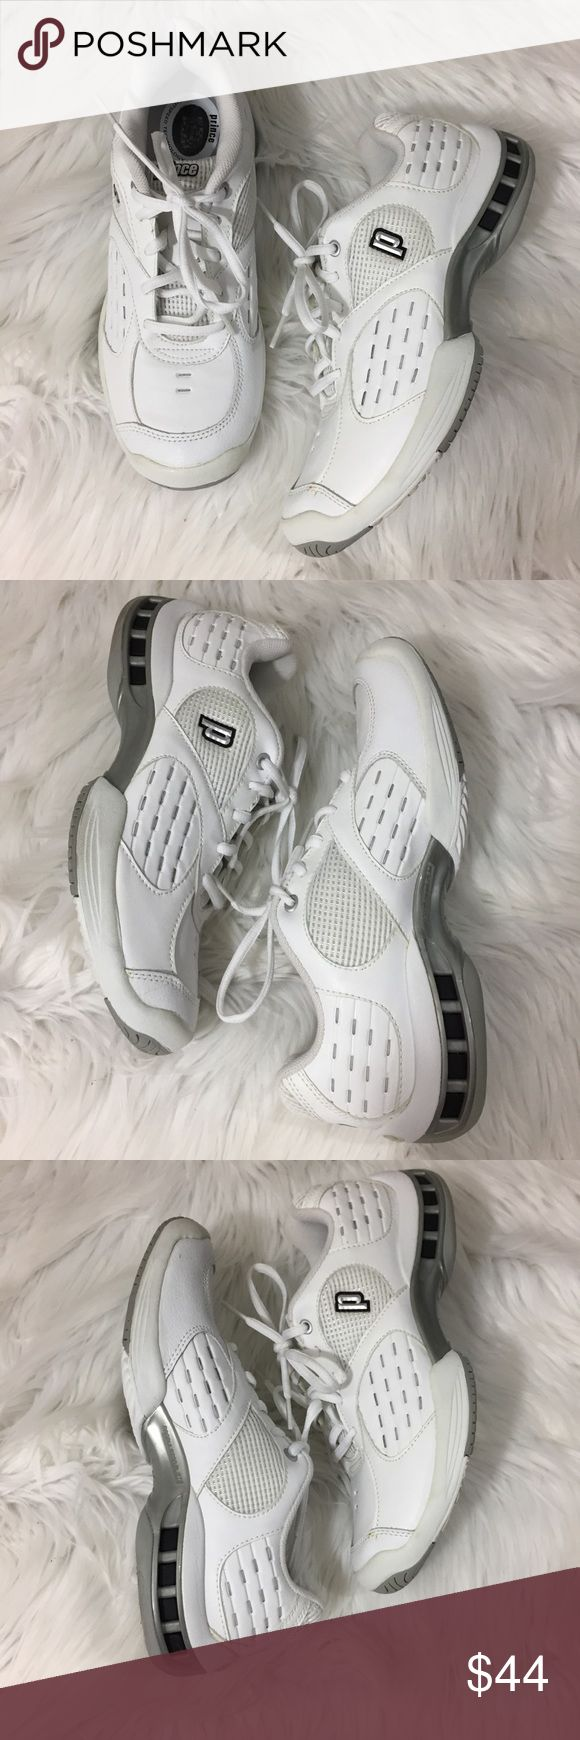 Prince tennis athletic court sneaker white size 8 Prince tennis court shoe light speed technology size 8.  EUC, only worn for a few matches at clubs that require all white.   • Posh Ambassador • smoke and pet free home • fast shipping! Prince Shoes Athletic Shoes